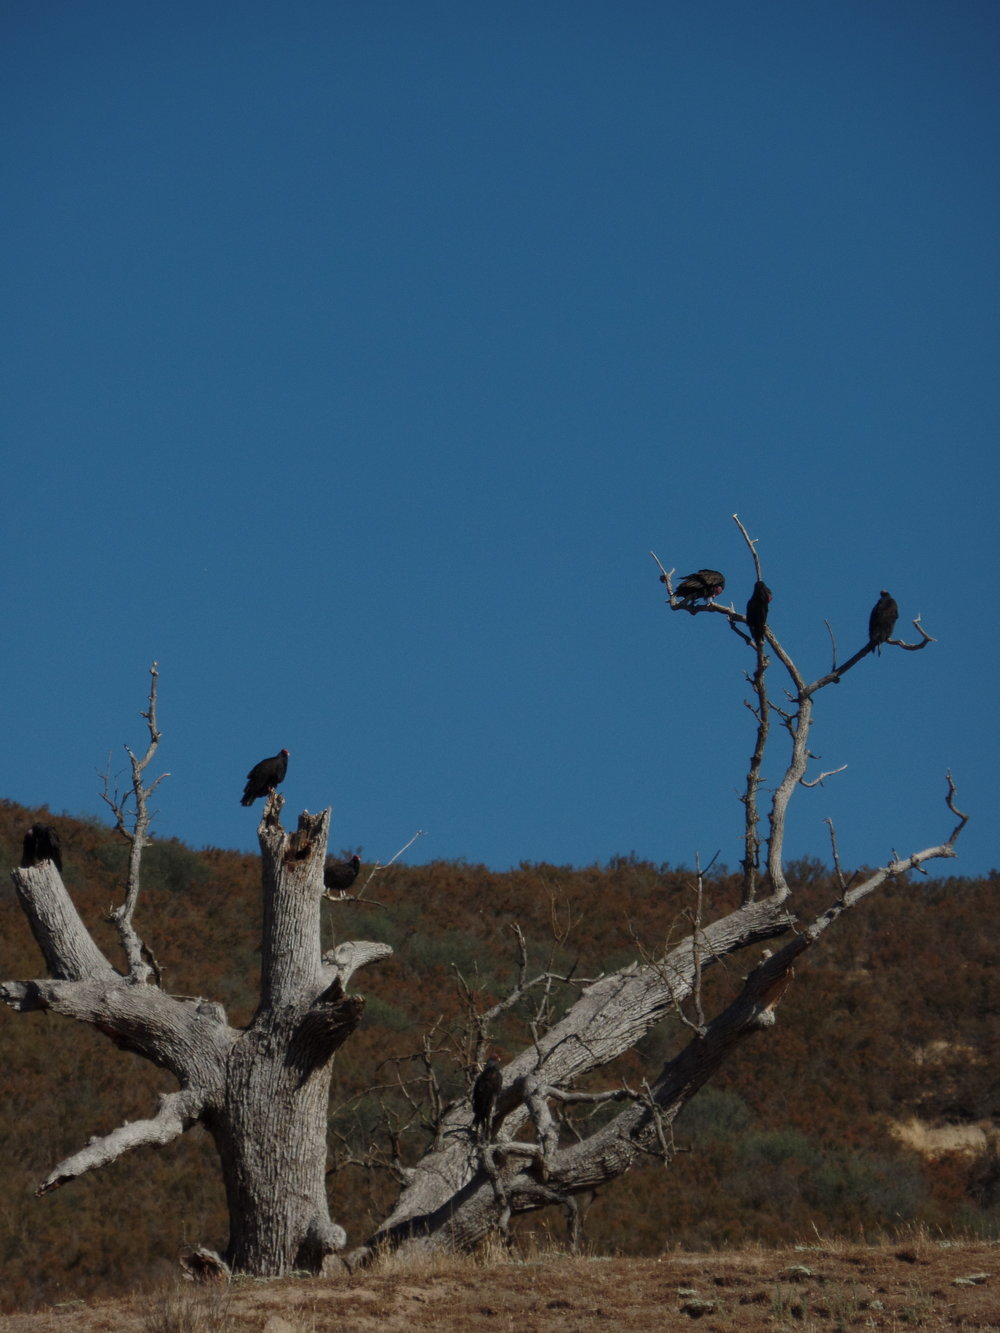 This was a cool tree on the way out of the campground, but we think these are another type of vulture and not California condors. We were able to see some California condor through the binoculars set up in the park. They were huge and awesome . . . and had a face only a mother could love.